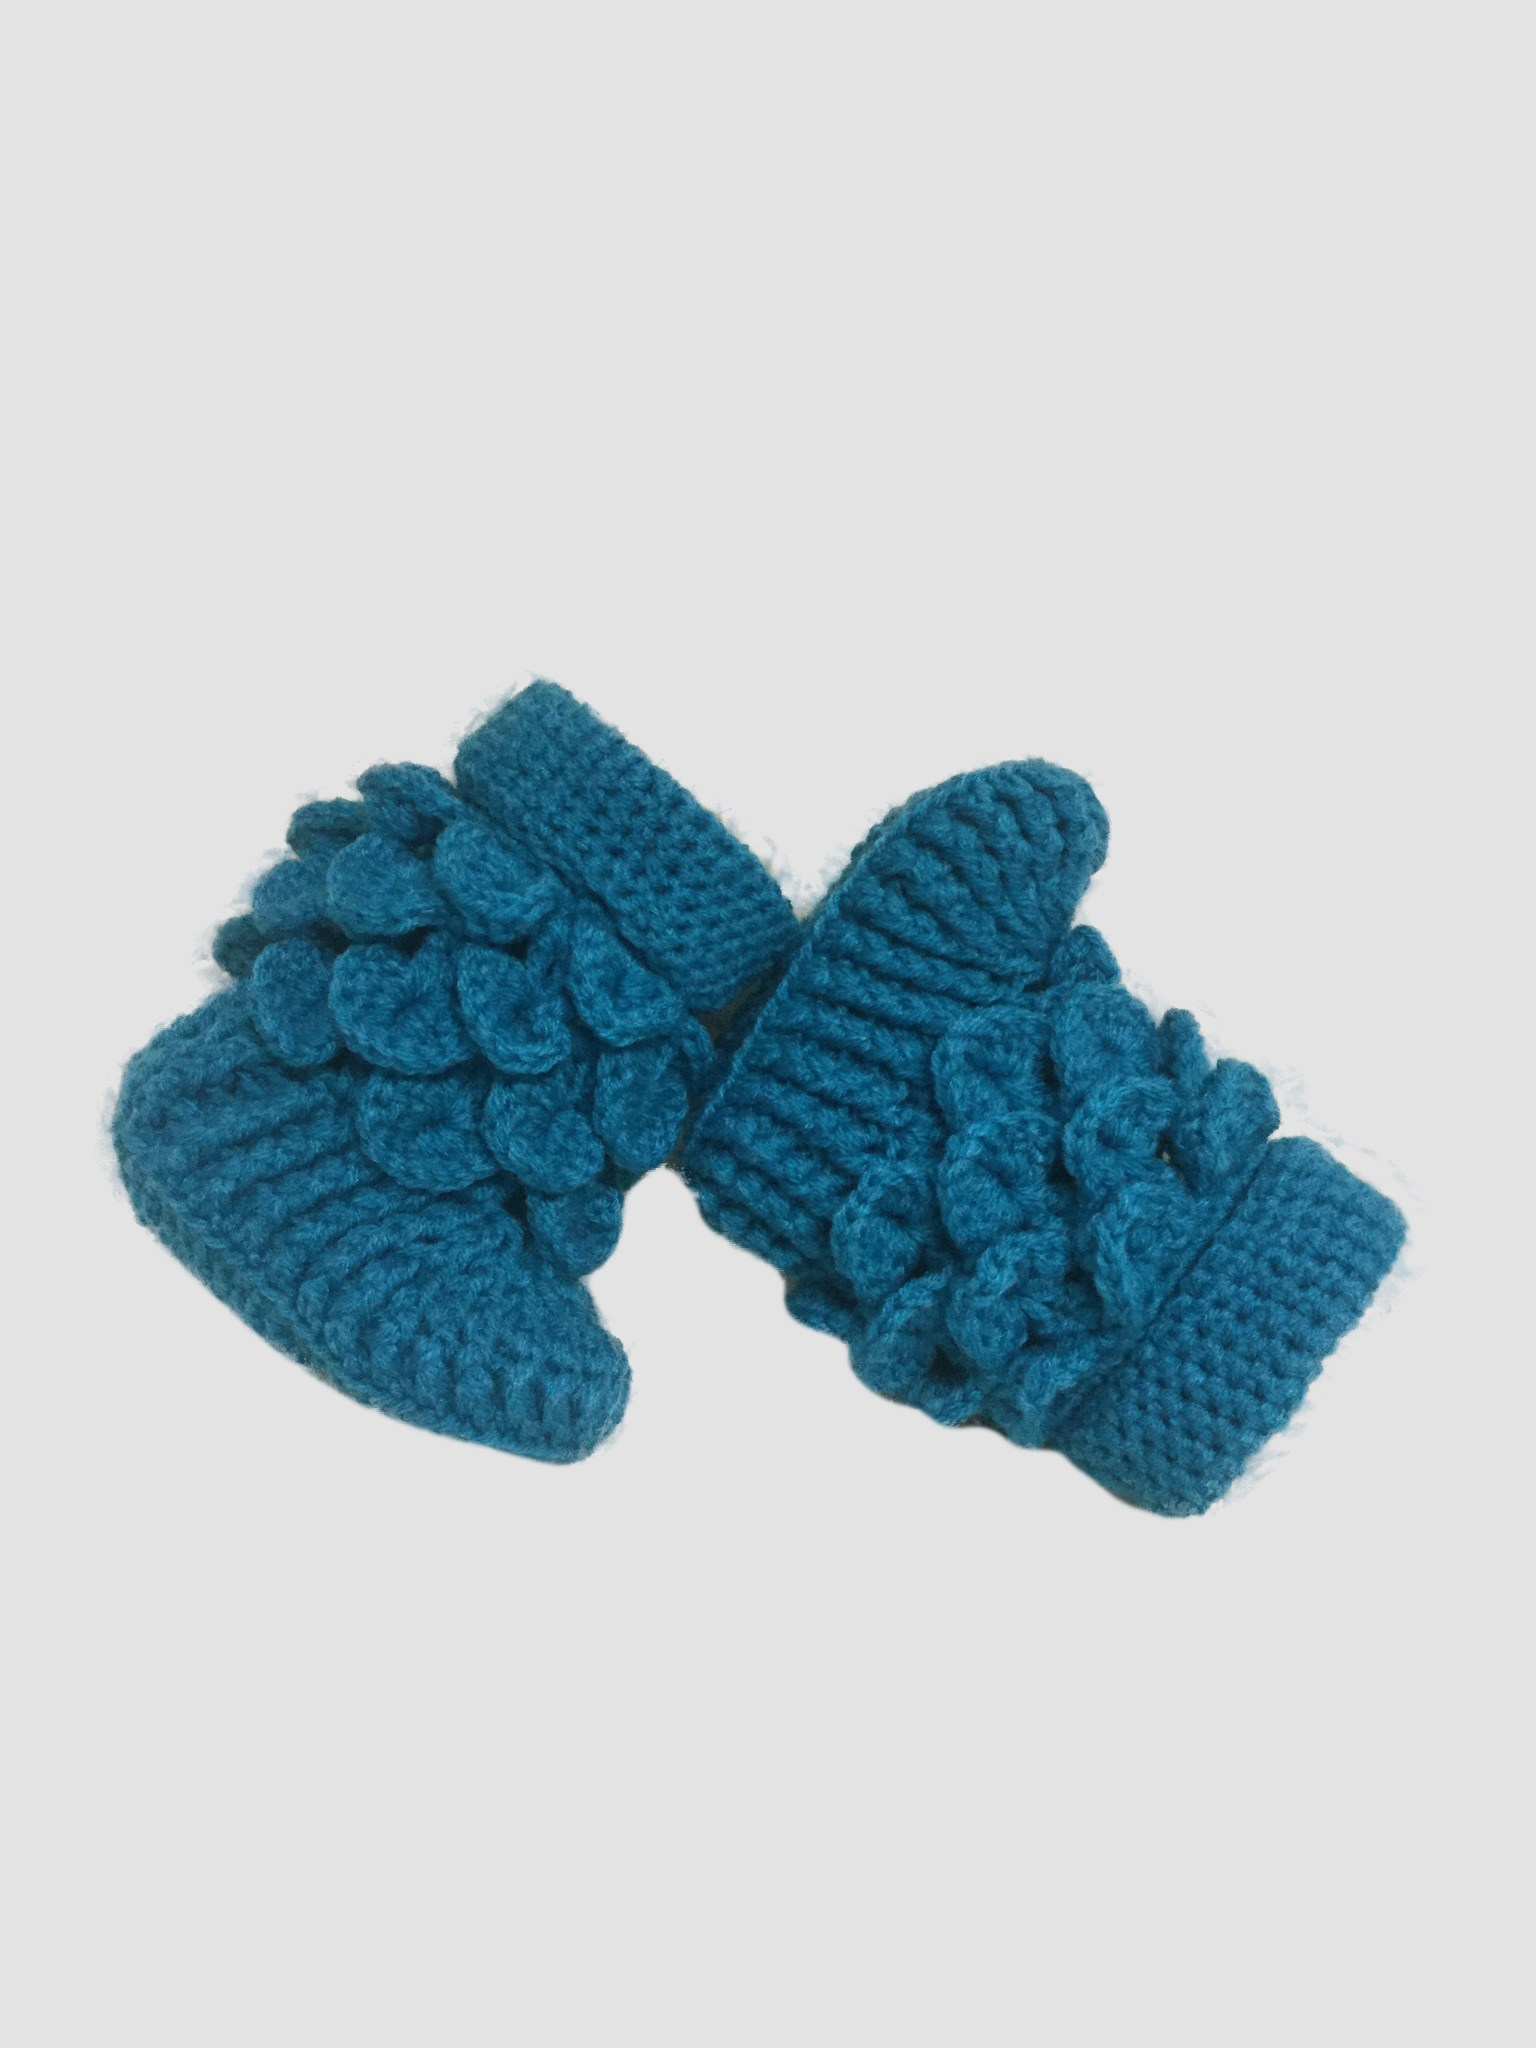 Blue Crocheted Baby Booties